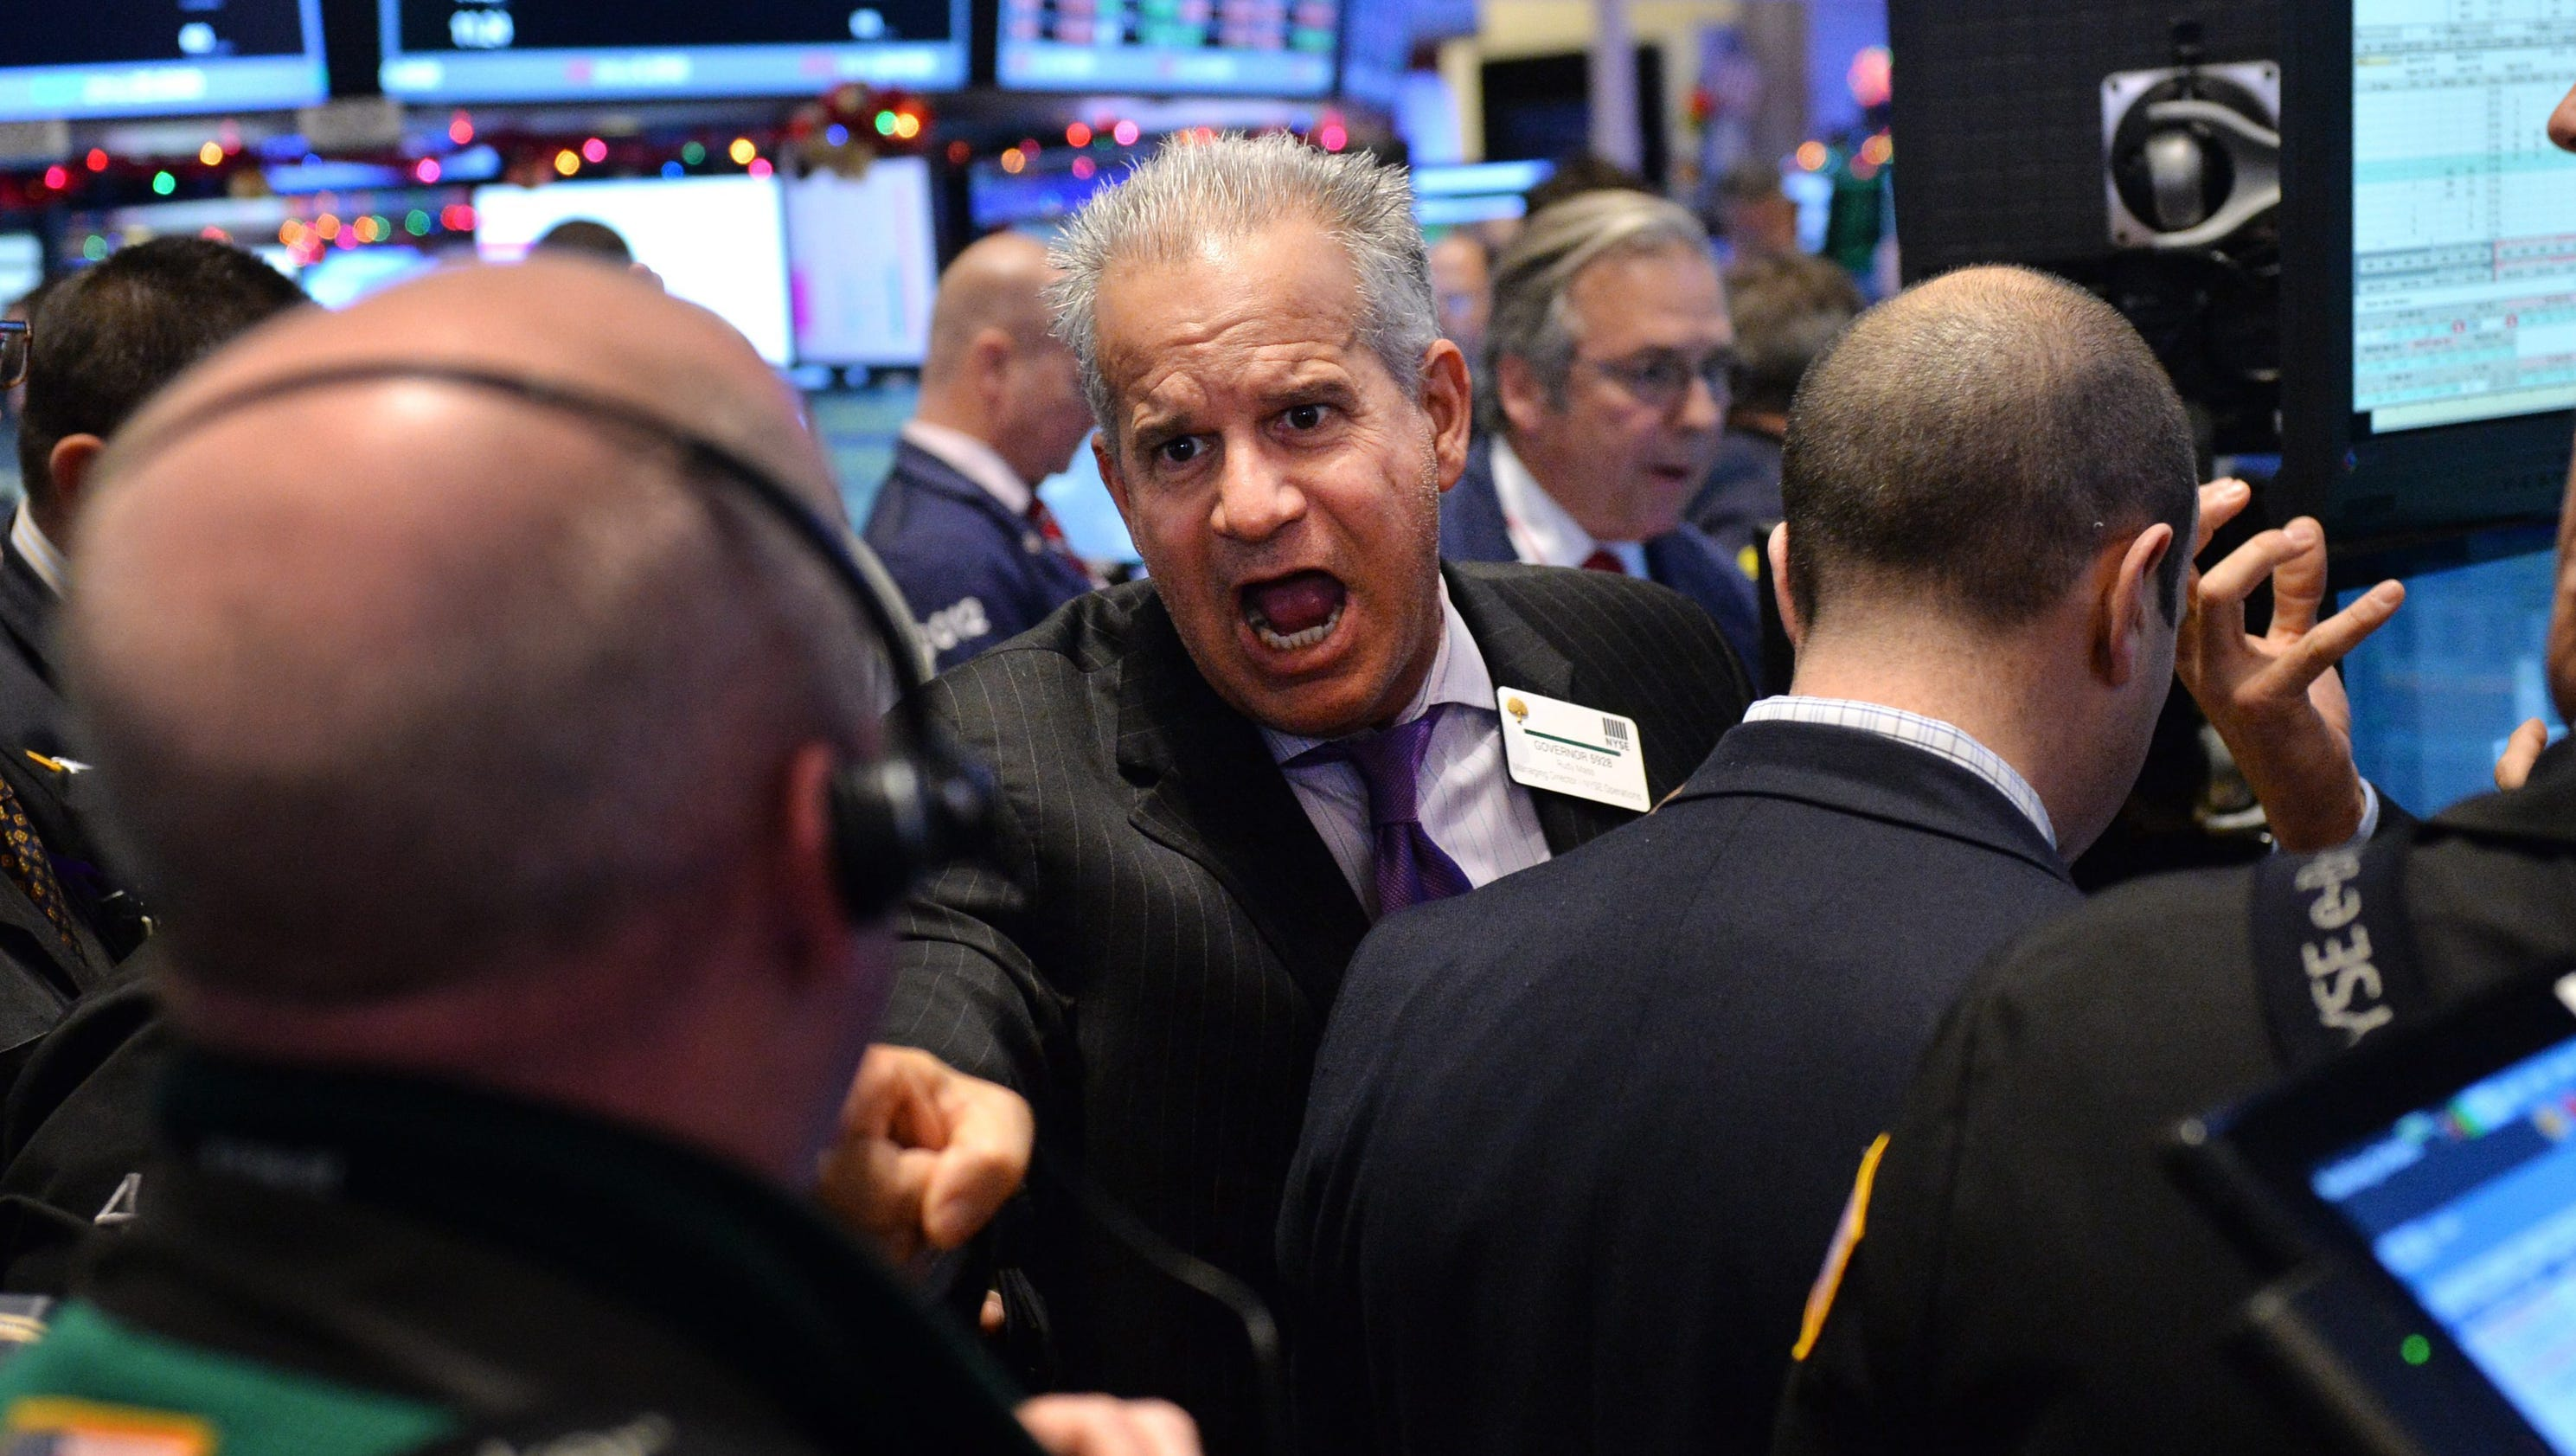 The New York Stock Exchange was all a twitter in anticipation of the company's IPO Thursday